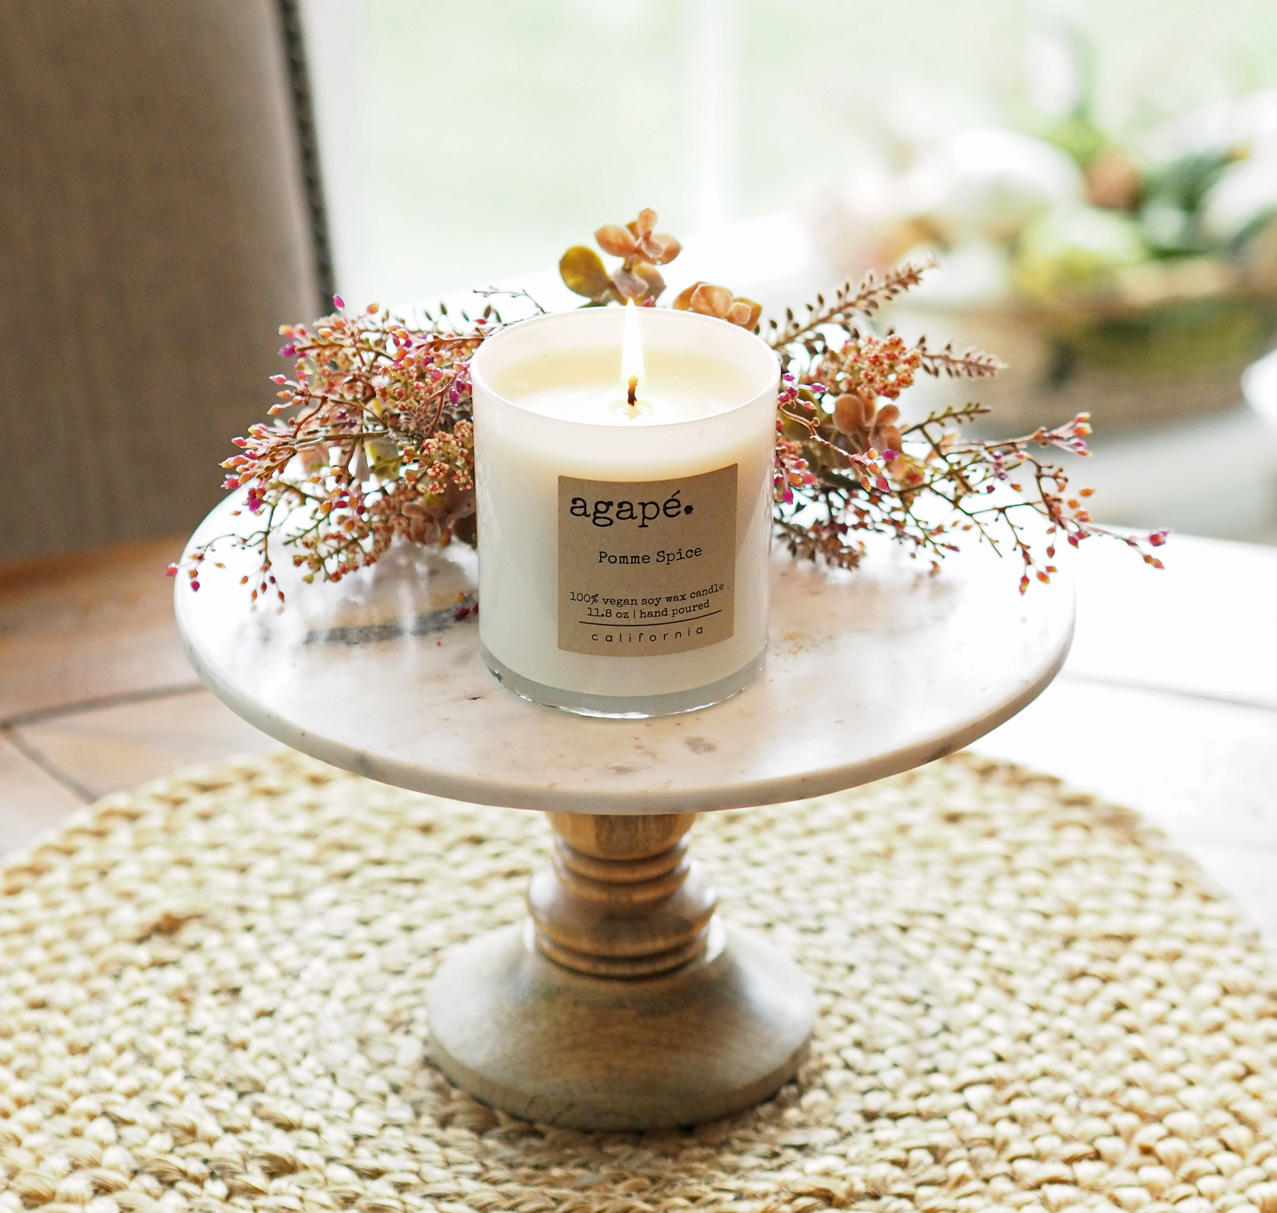 Marble  cakestand styled with that fabulous Pomme Spice Candle from  @AgapeCandles .The woven placemat is from Pier 1 Imports. Click  HERE for similar item.